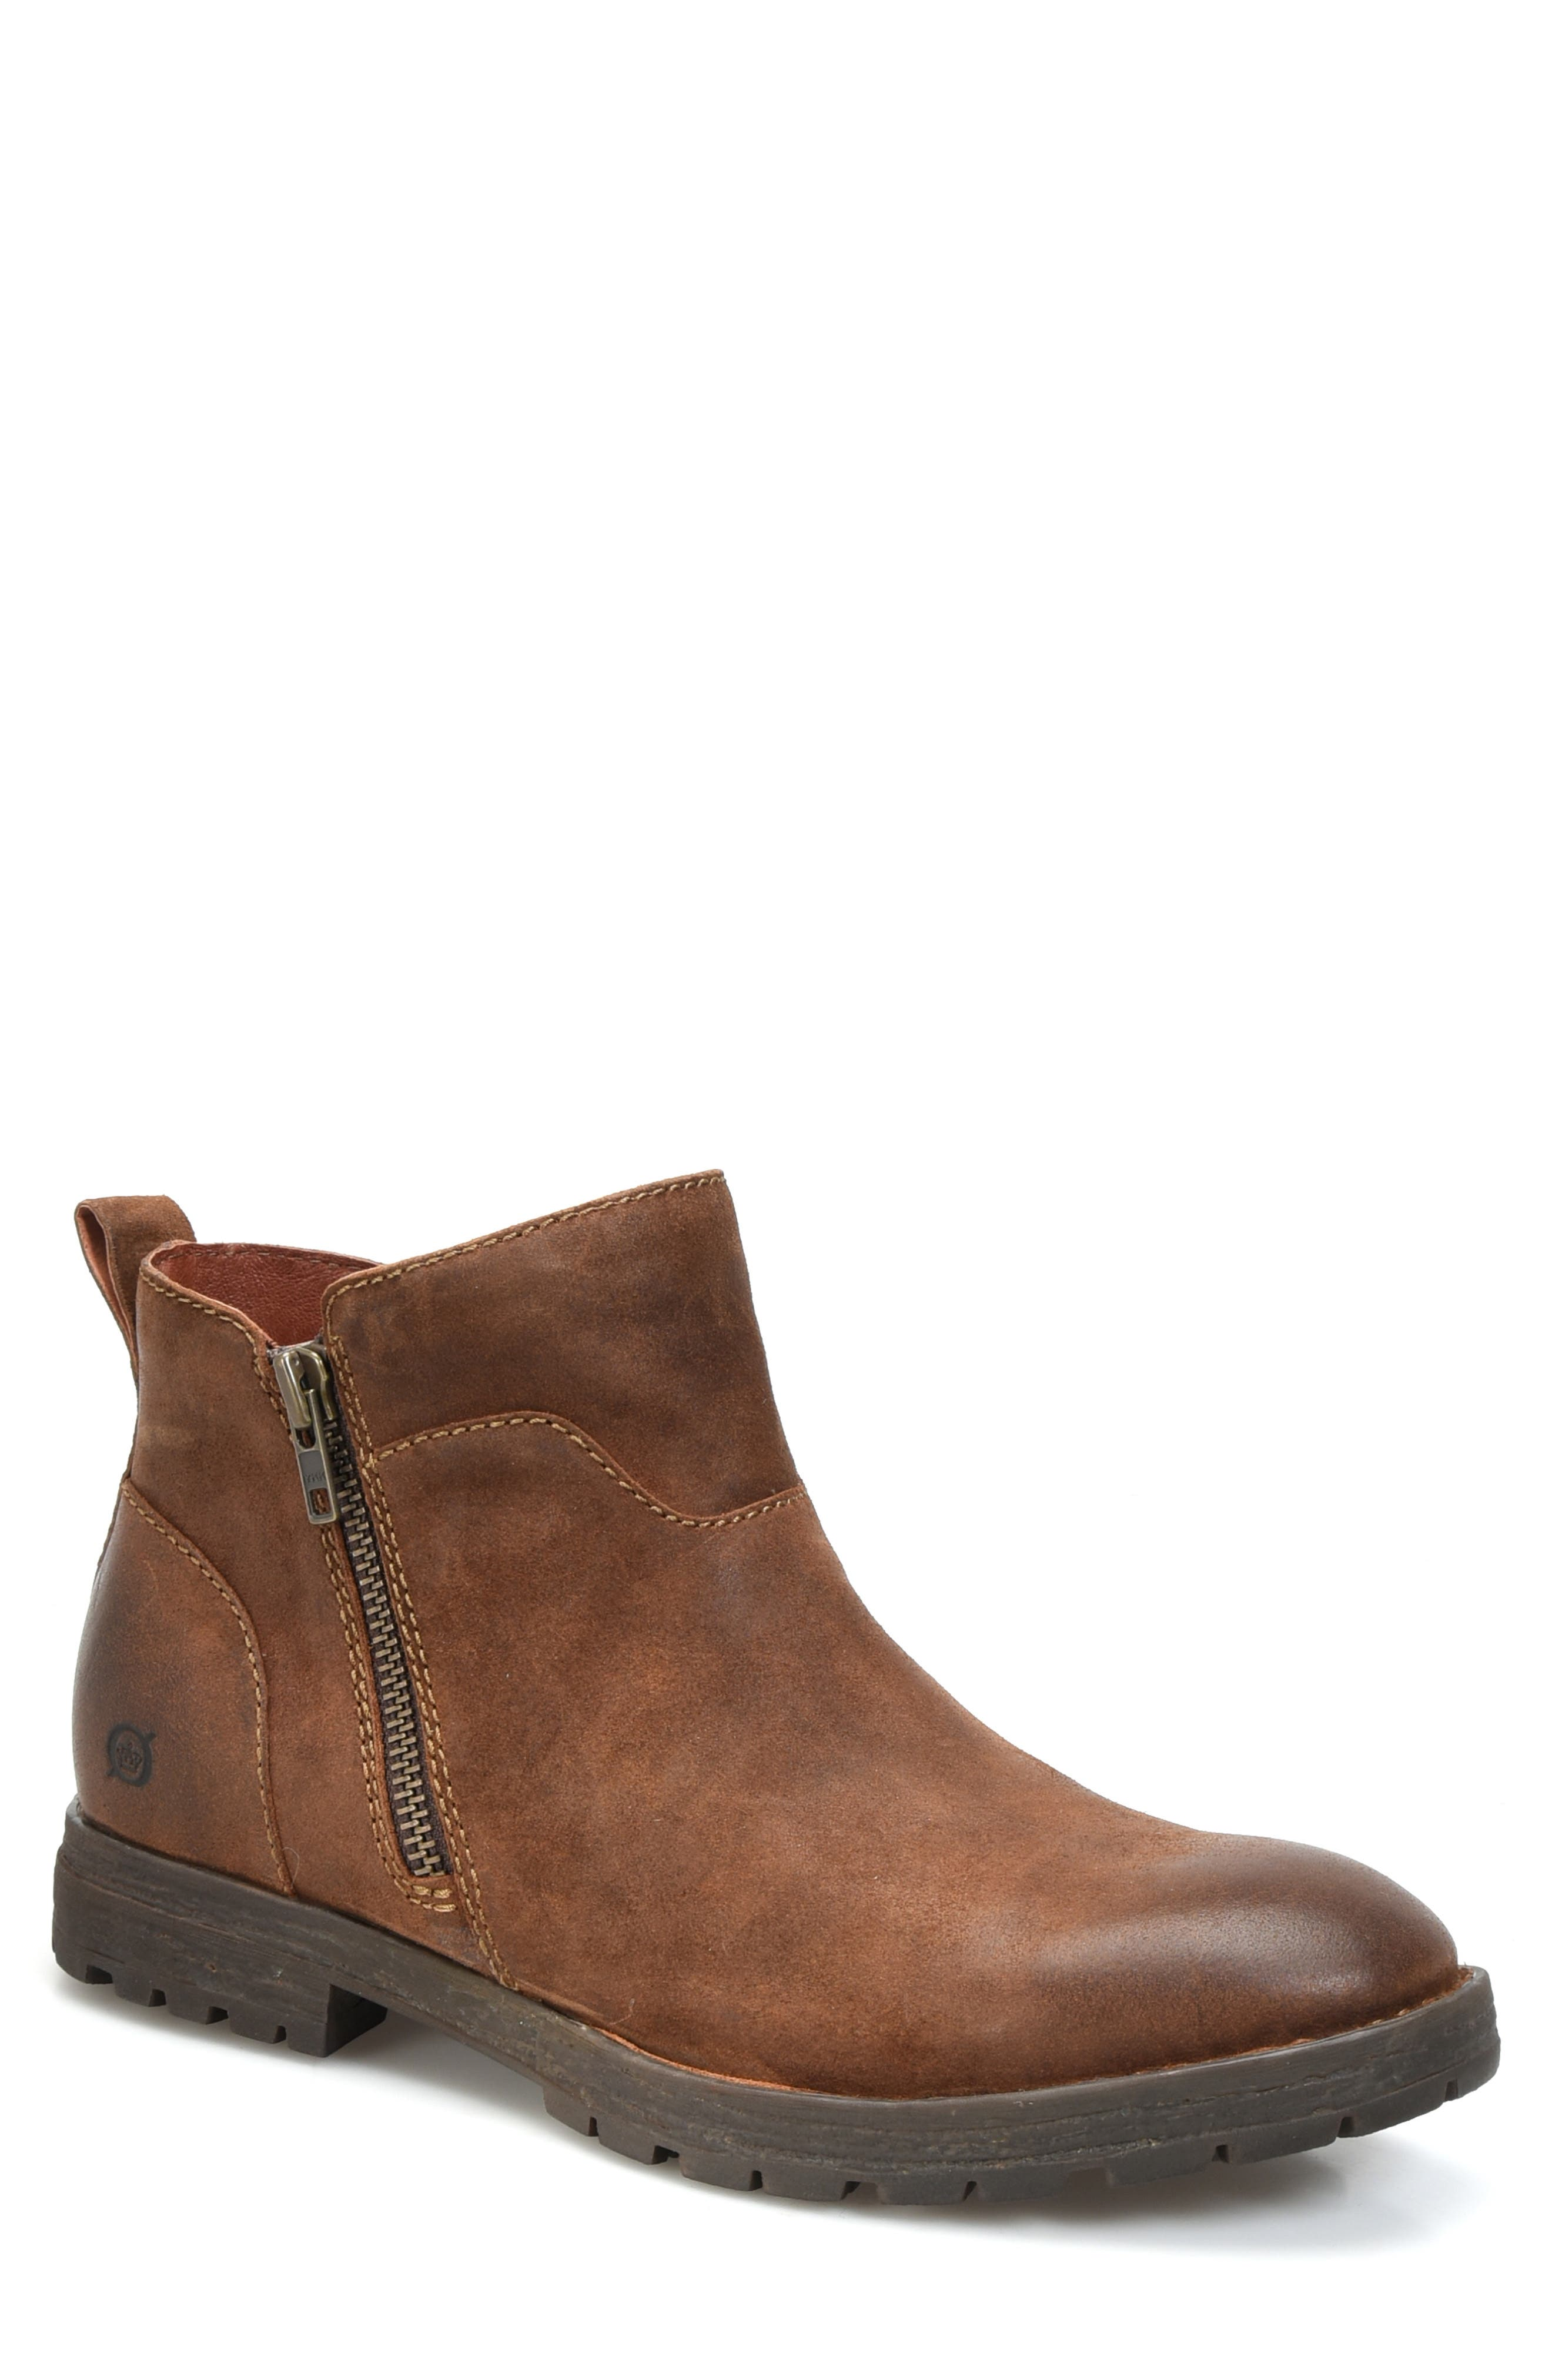 Born Ludo Zip Boot,                             Main thumbnail 1, color,                             RUST SUEDE